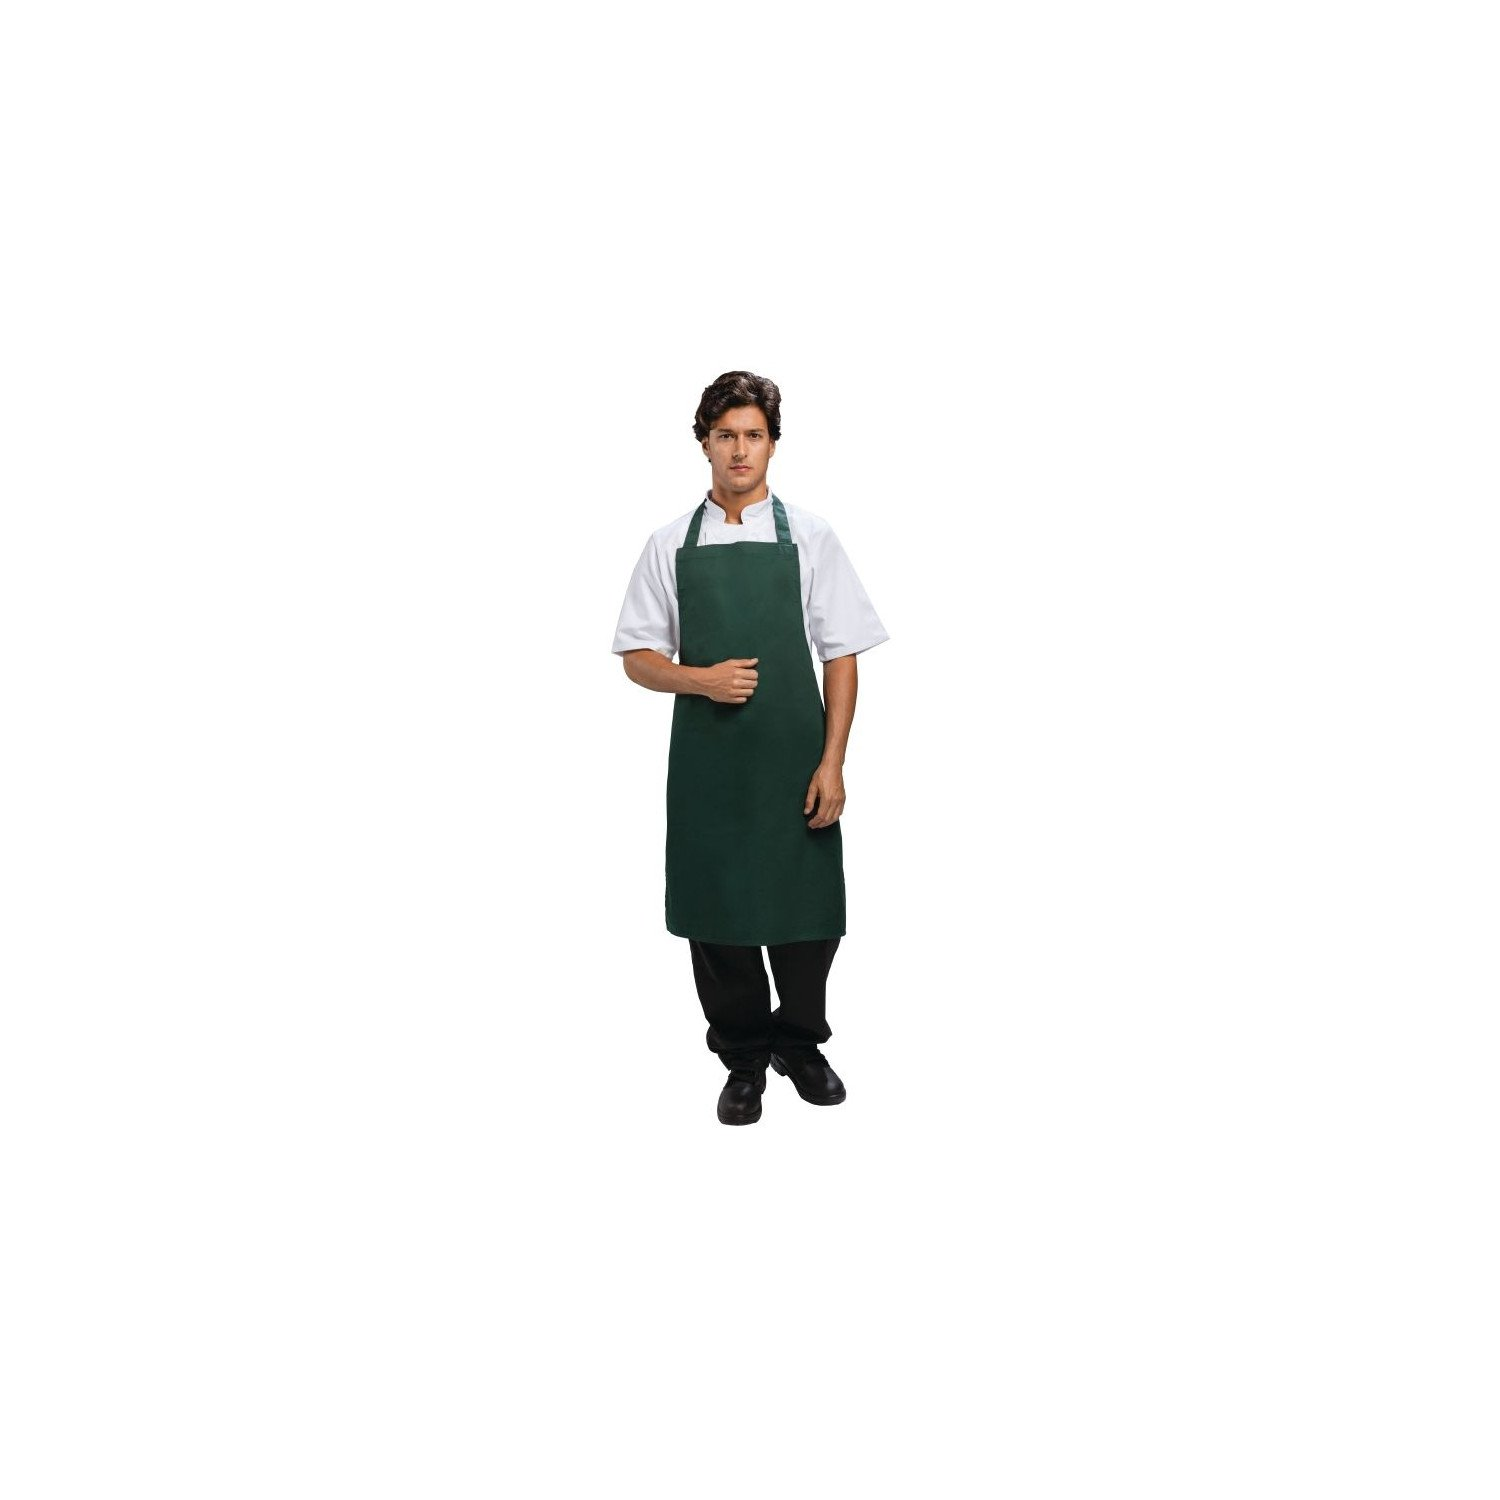 Tablier bavette polyester & coton vert WHITES CHEFS APPAREL Tabliers